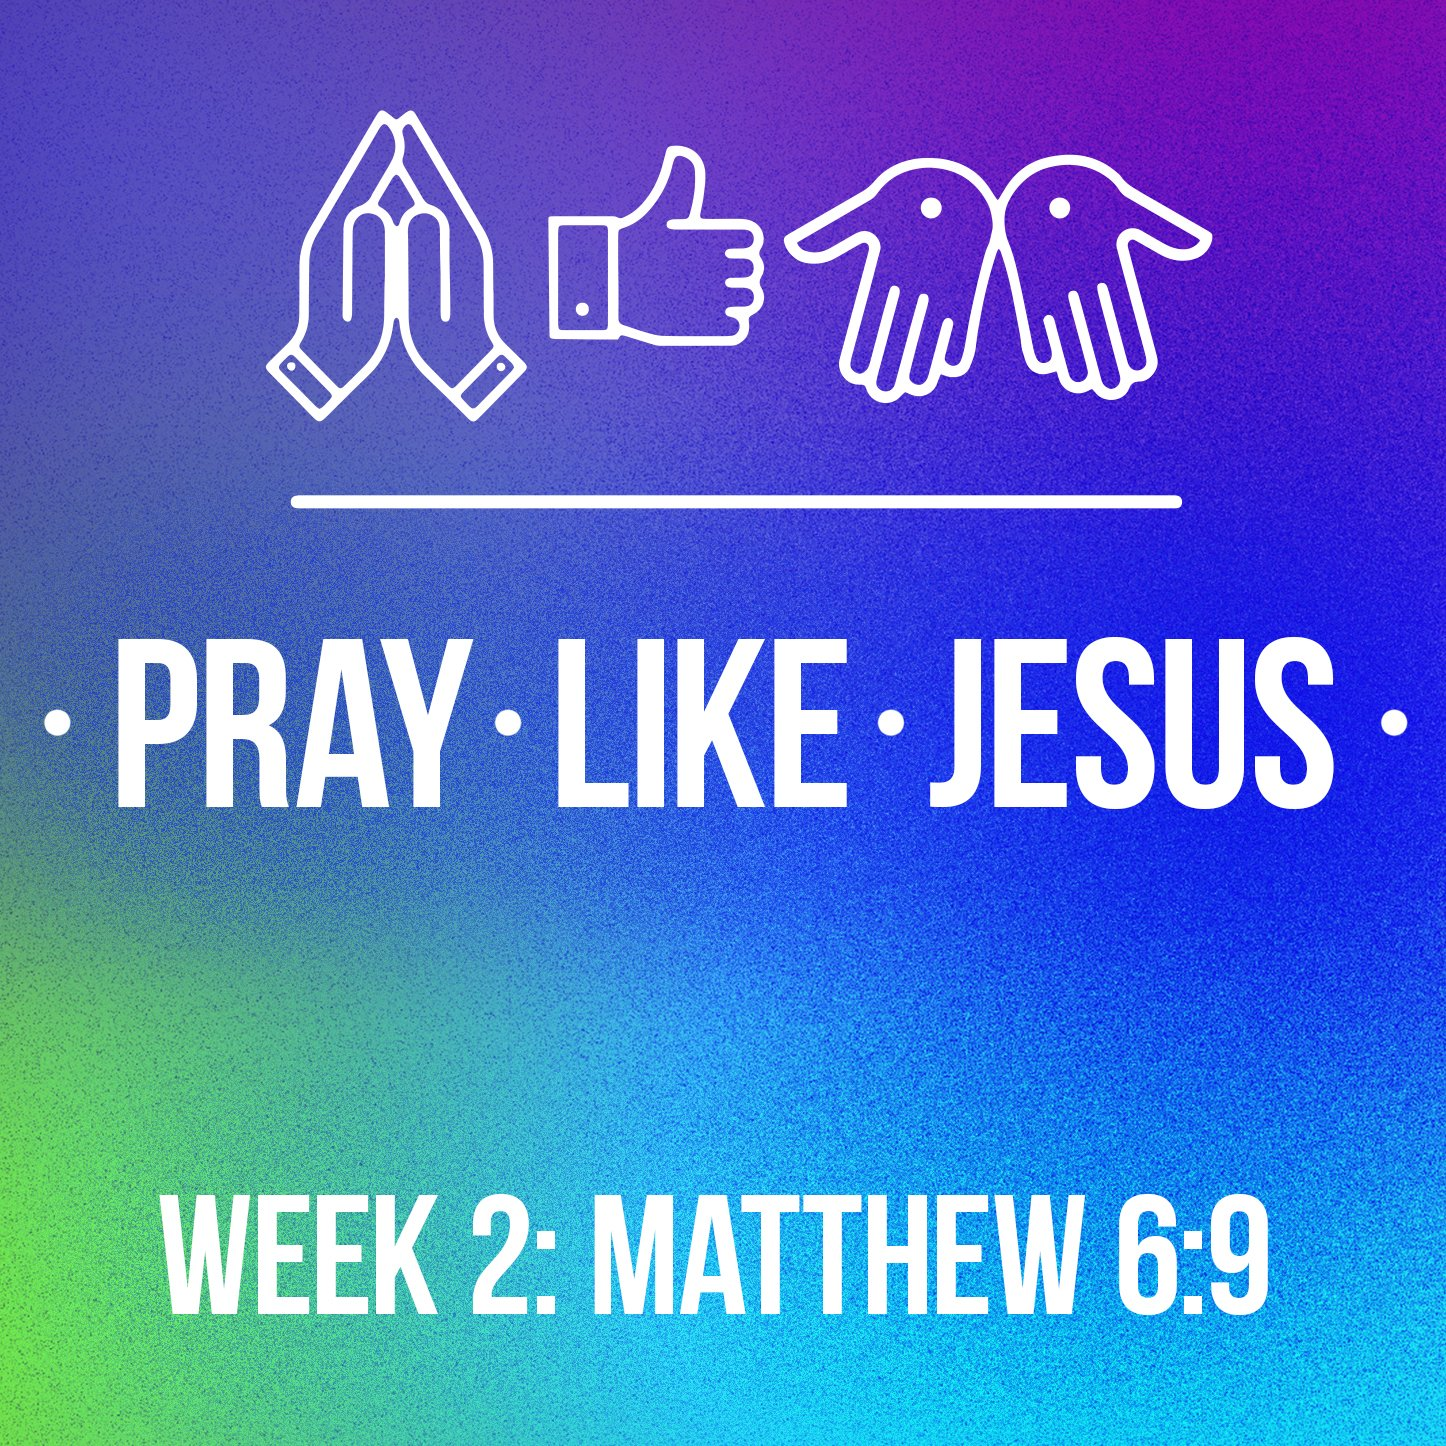 Pray Like Jesus Web 2